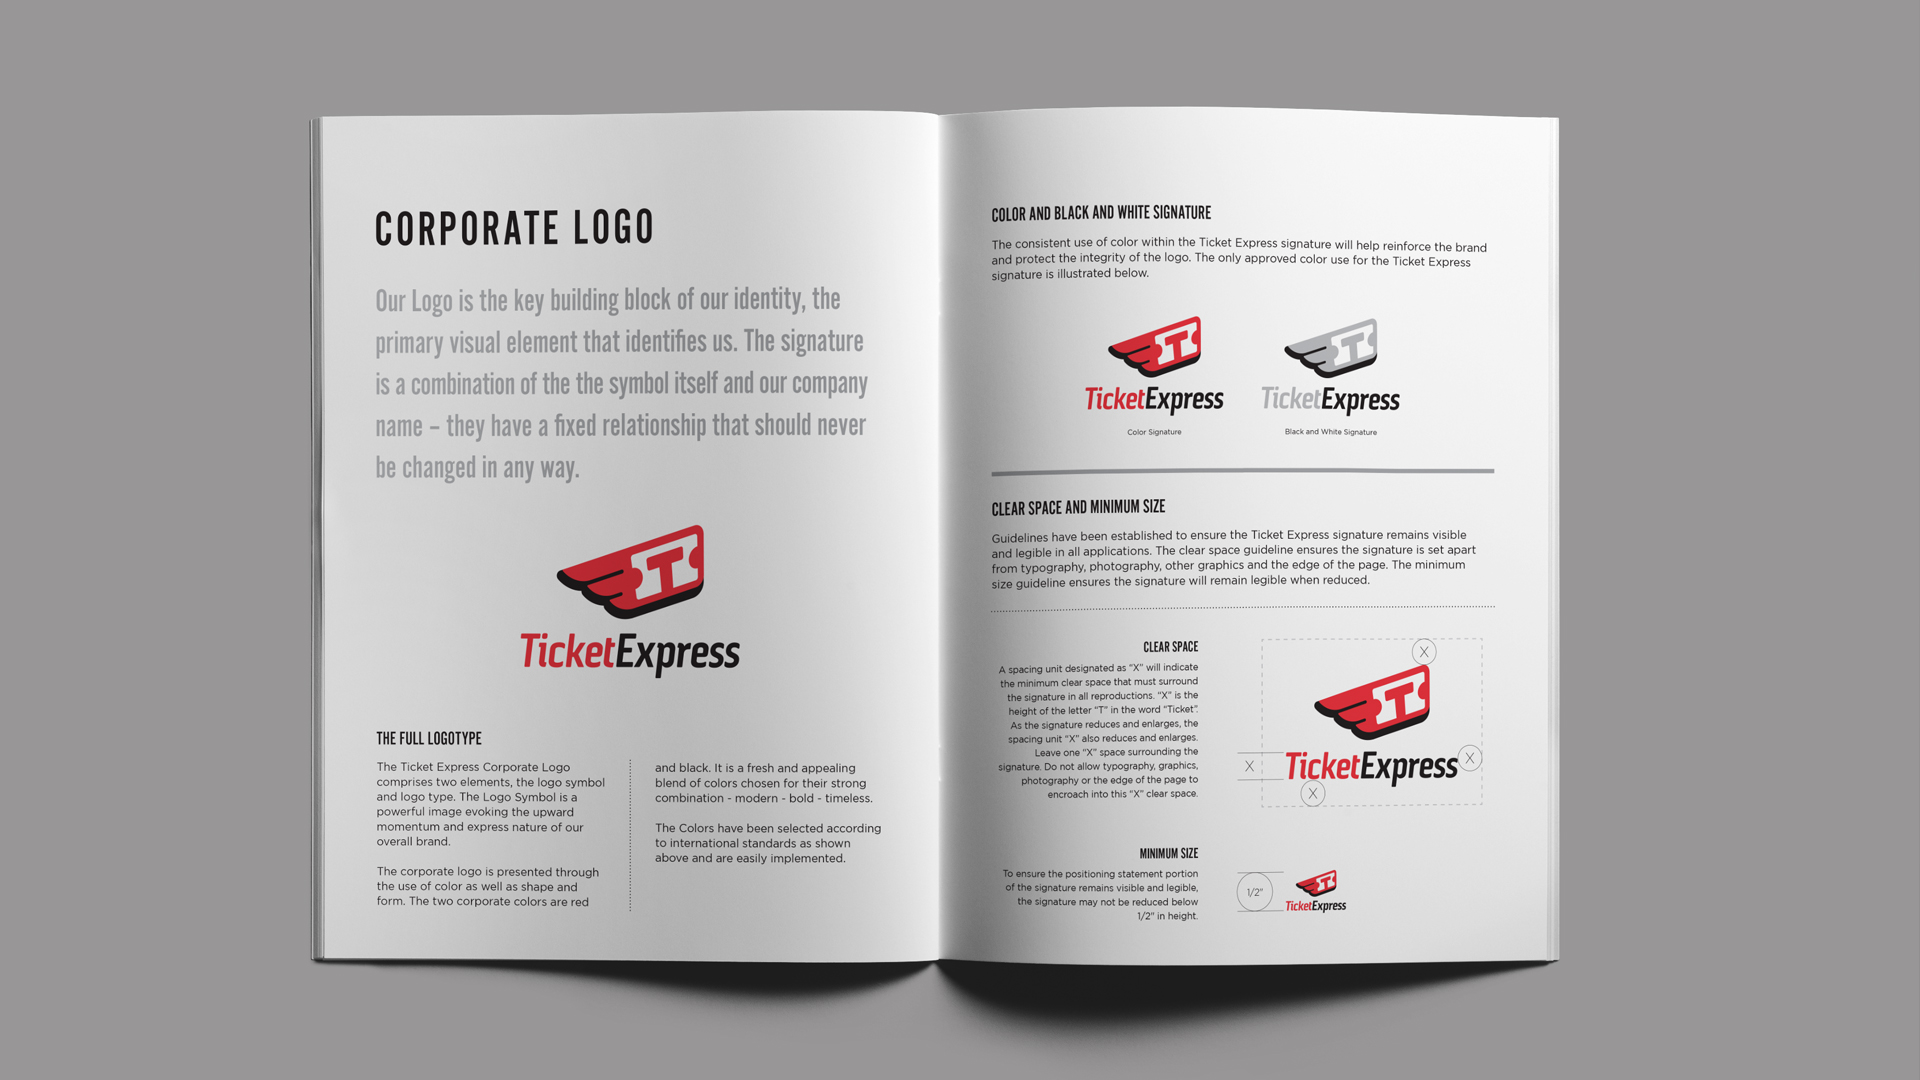 Ticket Express branding standards by Damon Andersen, phoenix branding agency, consultant, expert.